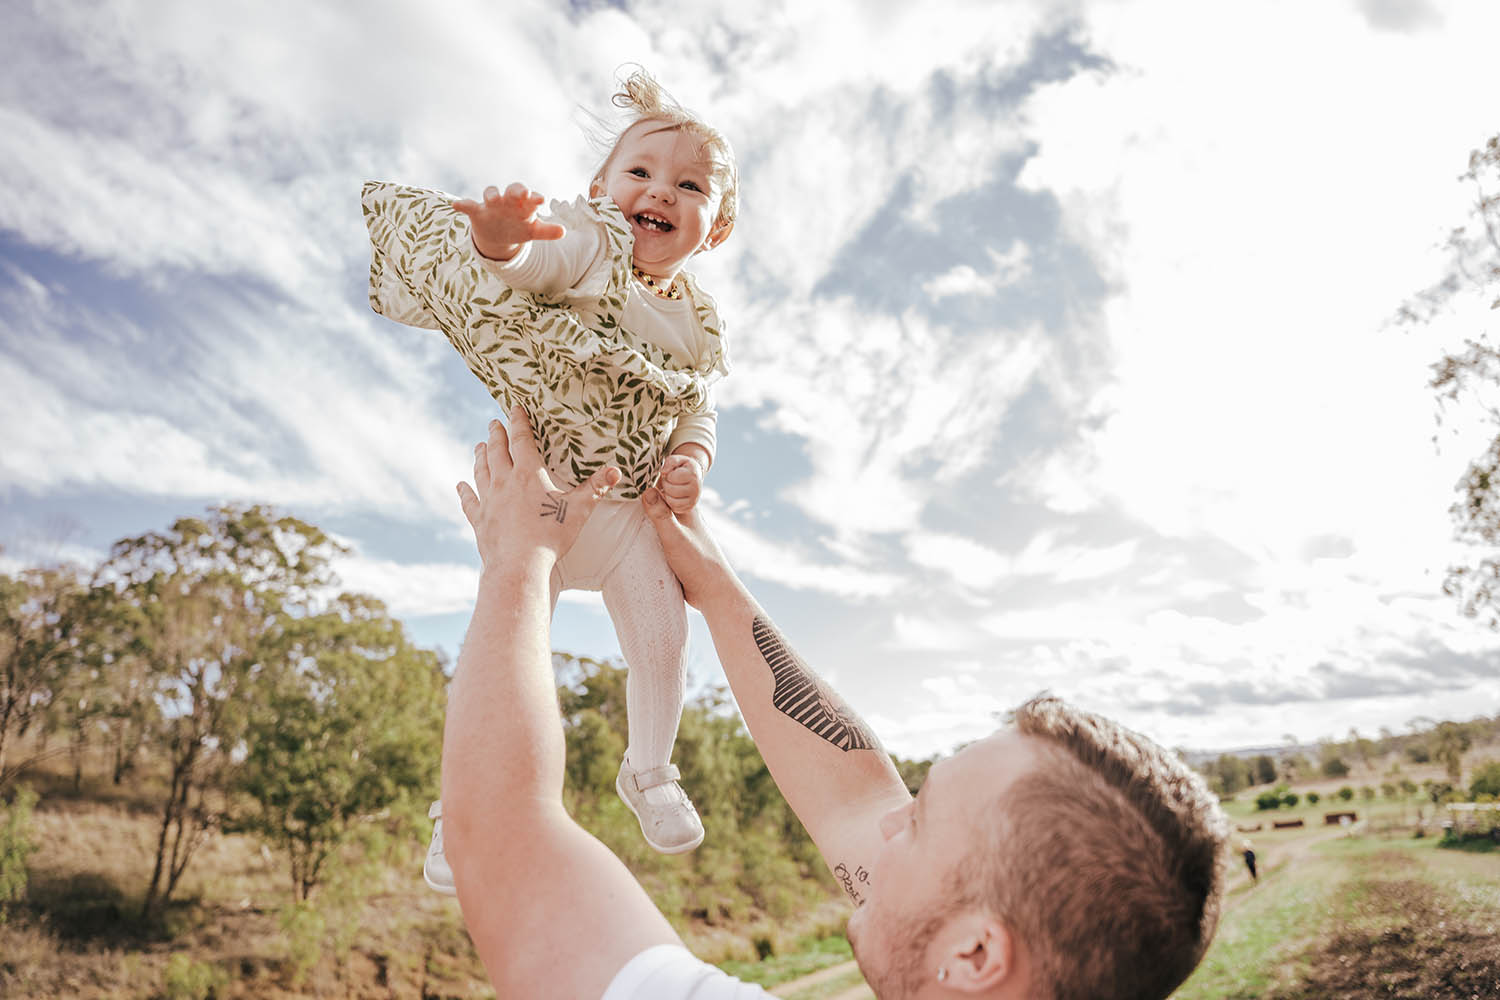 Family Photography - father throwing daughter